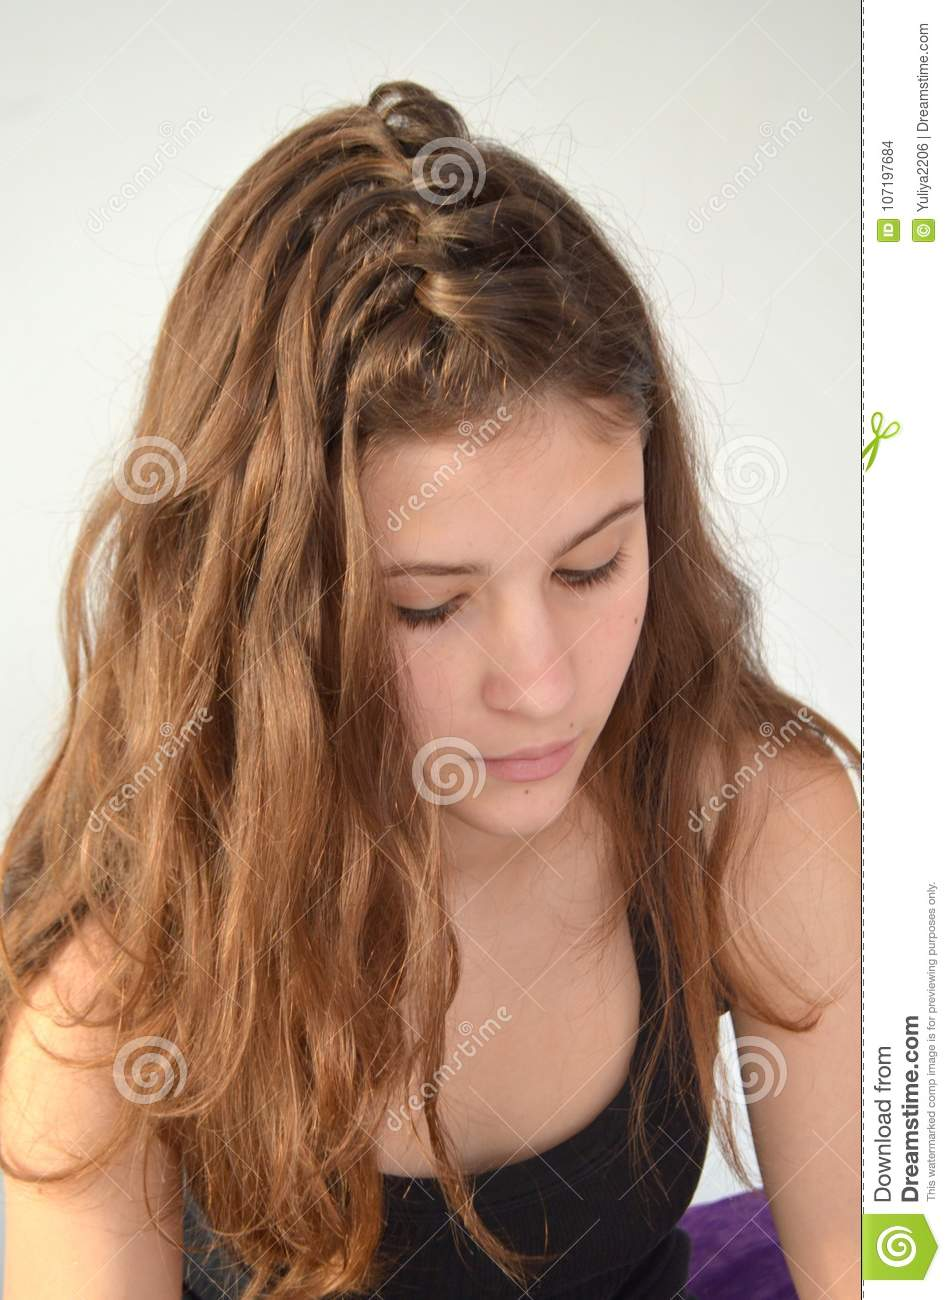 Hairstyle On Medium Length Of Hair Stock Photo Image Of